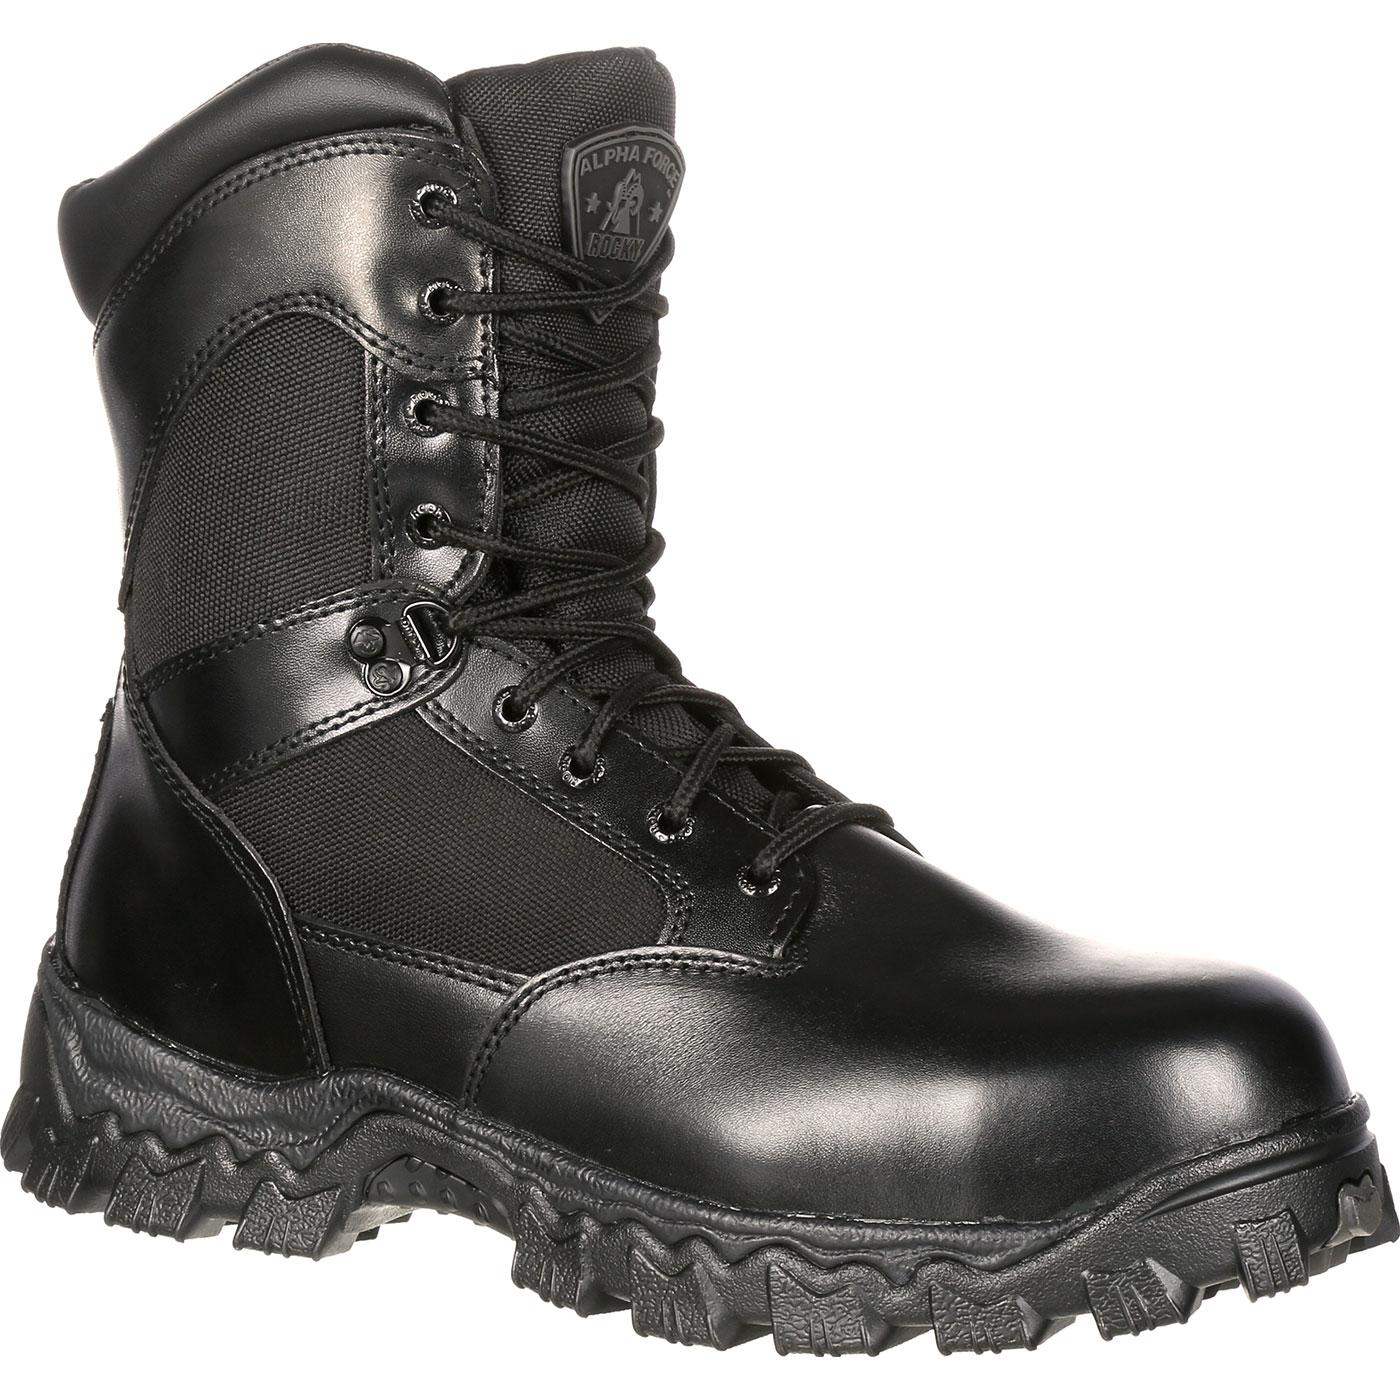 AlphaForce Zipper Waterproof Duty Boot